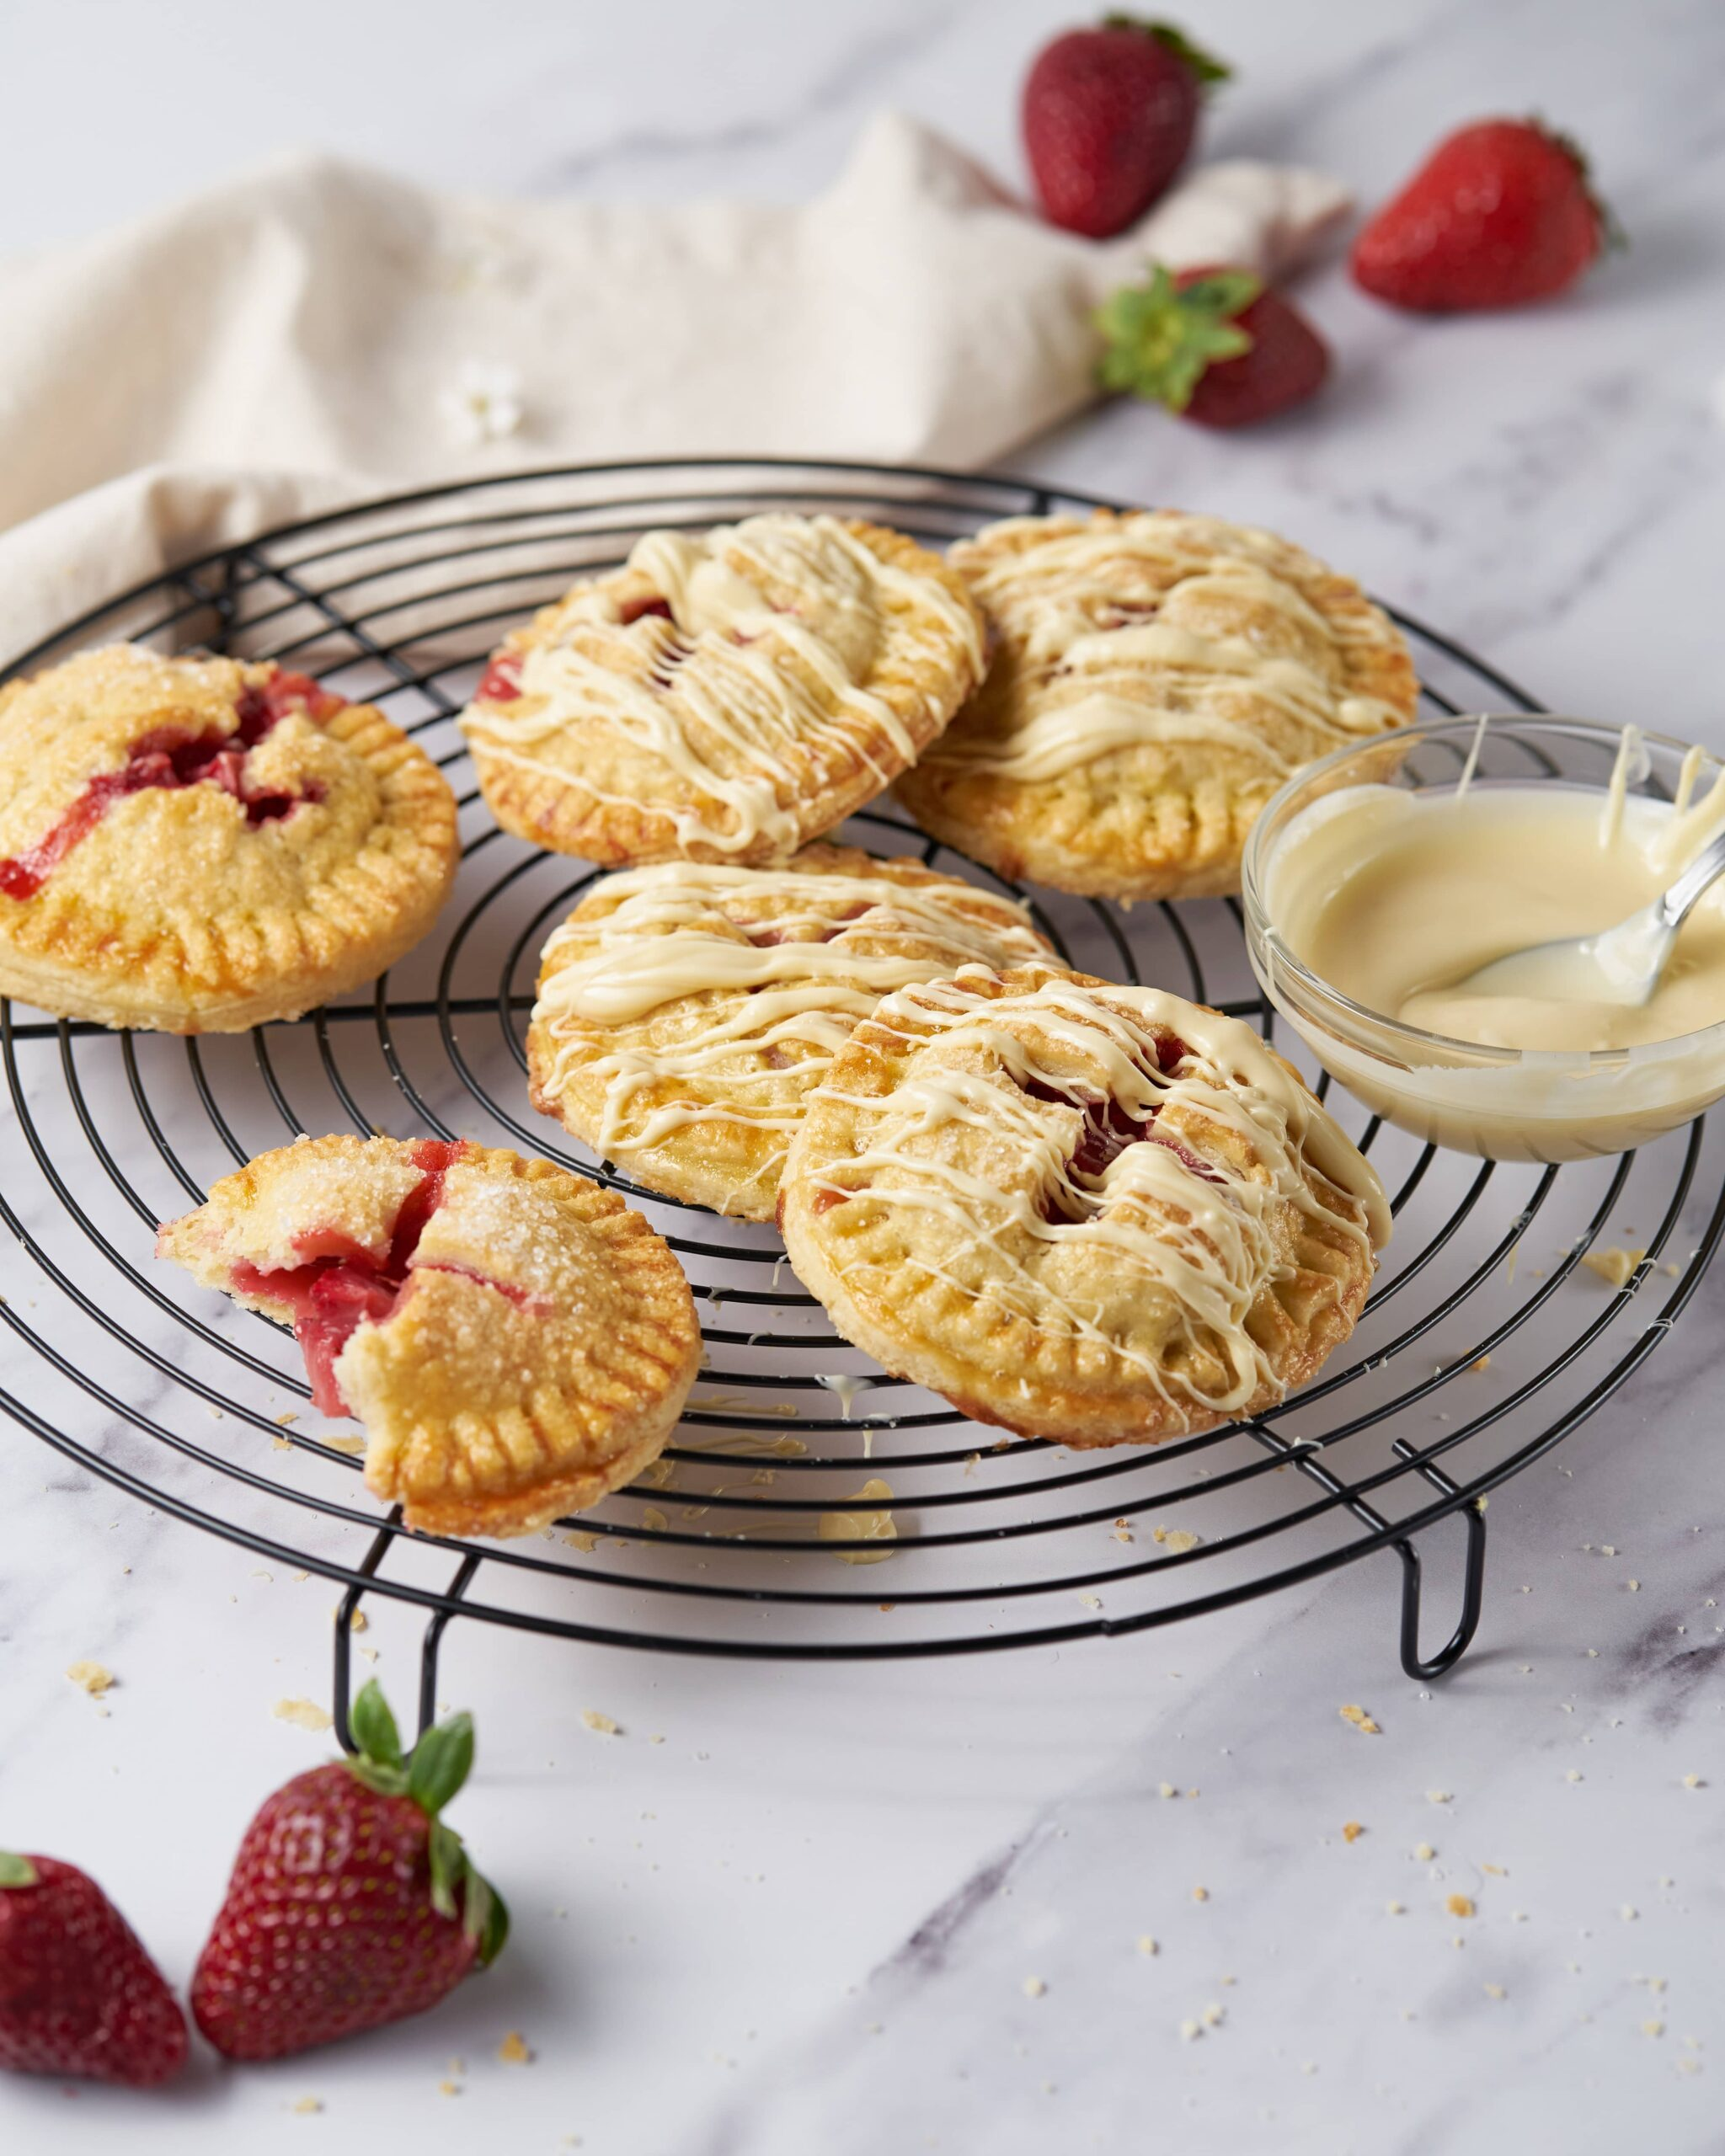 Strawberry Hand Pies with White Chocolate Drizzle